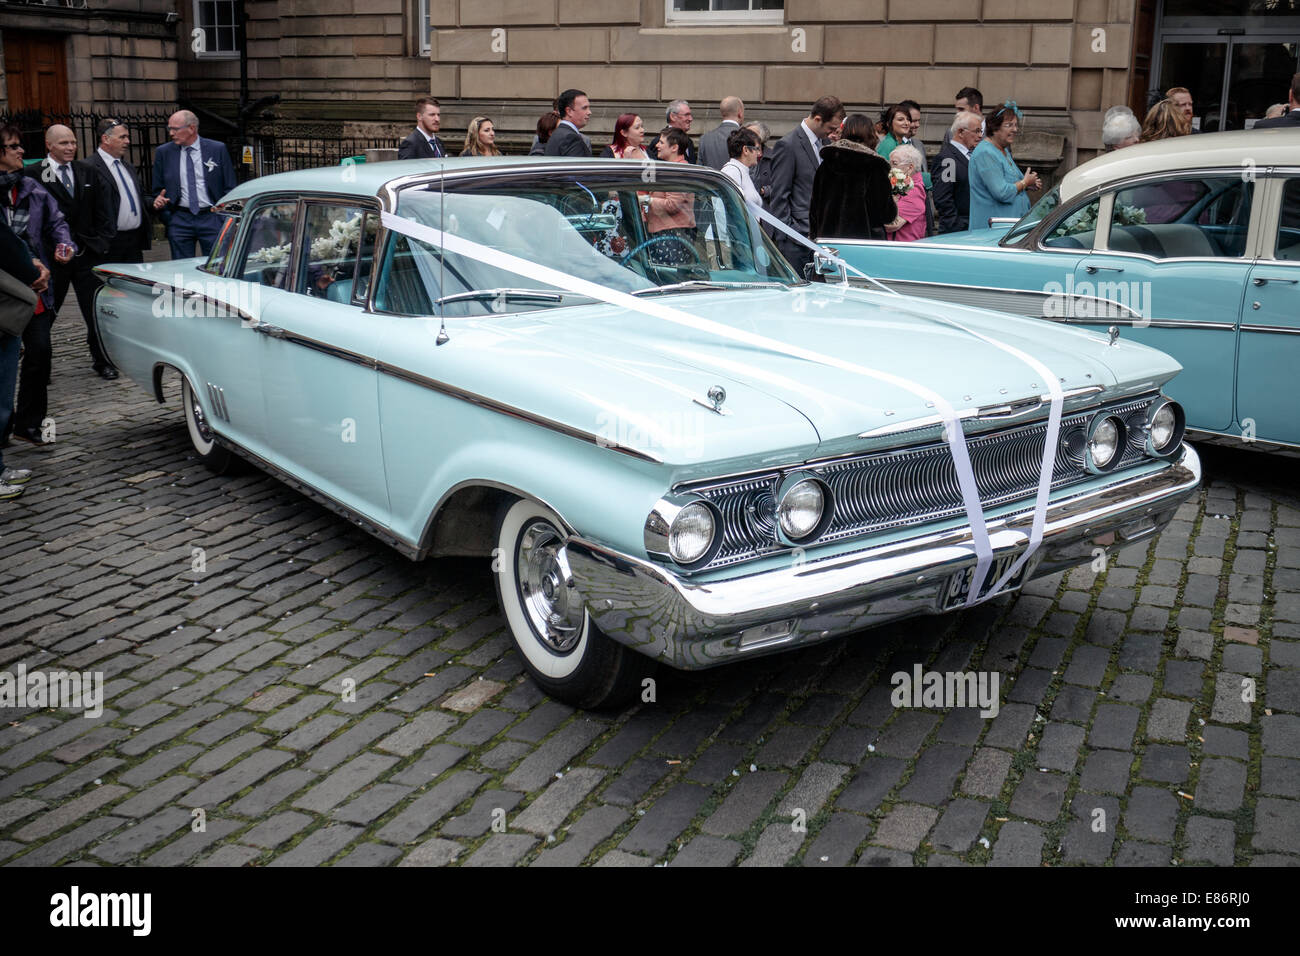 Vintage Mercury Wedding Car Old Town Edinburgh